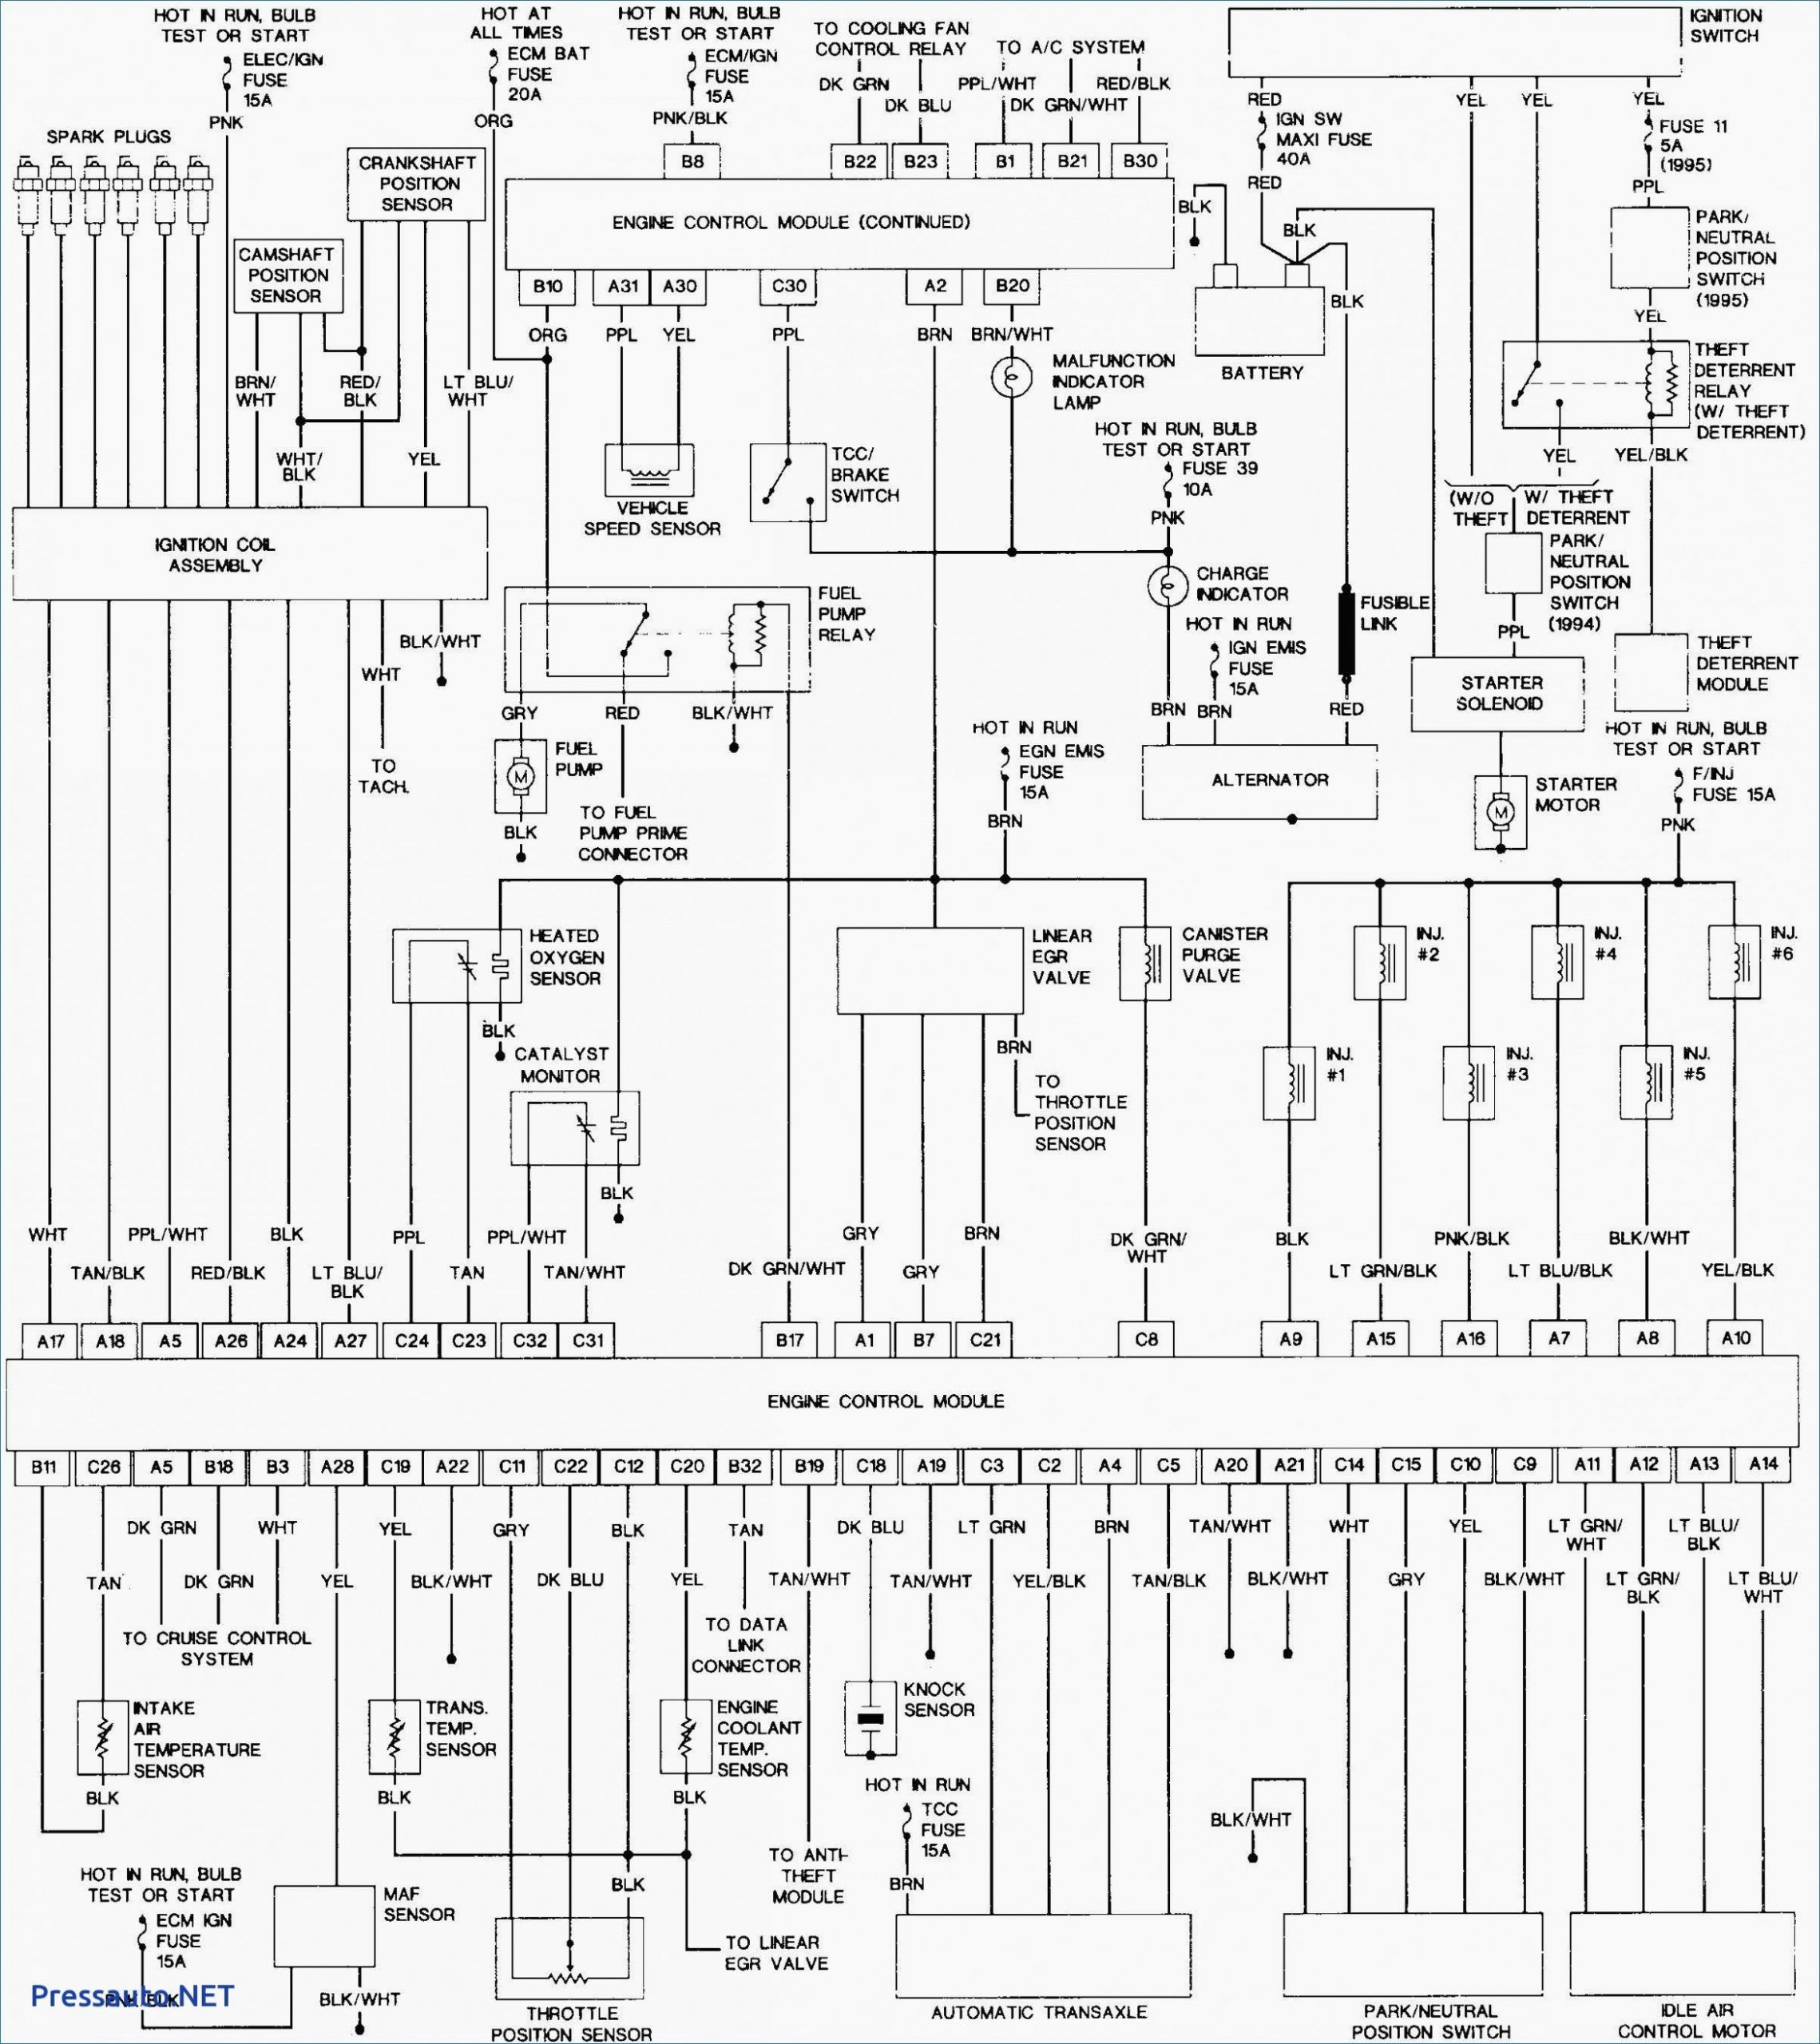 [FPER_4992]  8 Volkswagen Jetta 8.8 Engine Diagram di 2020 | Vw Engine Harness Diagram 1994 |  | Pinterest